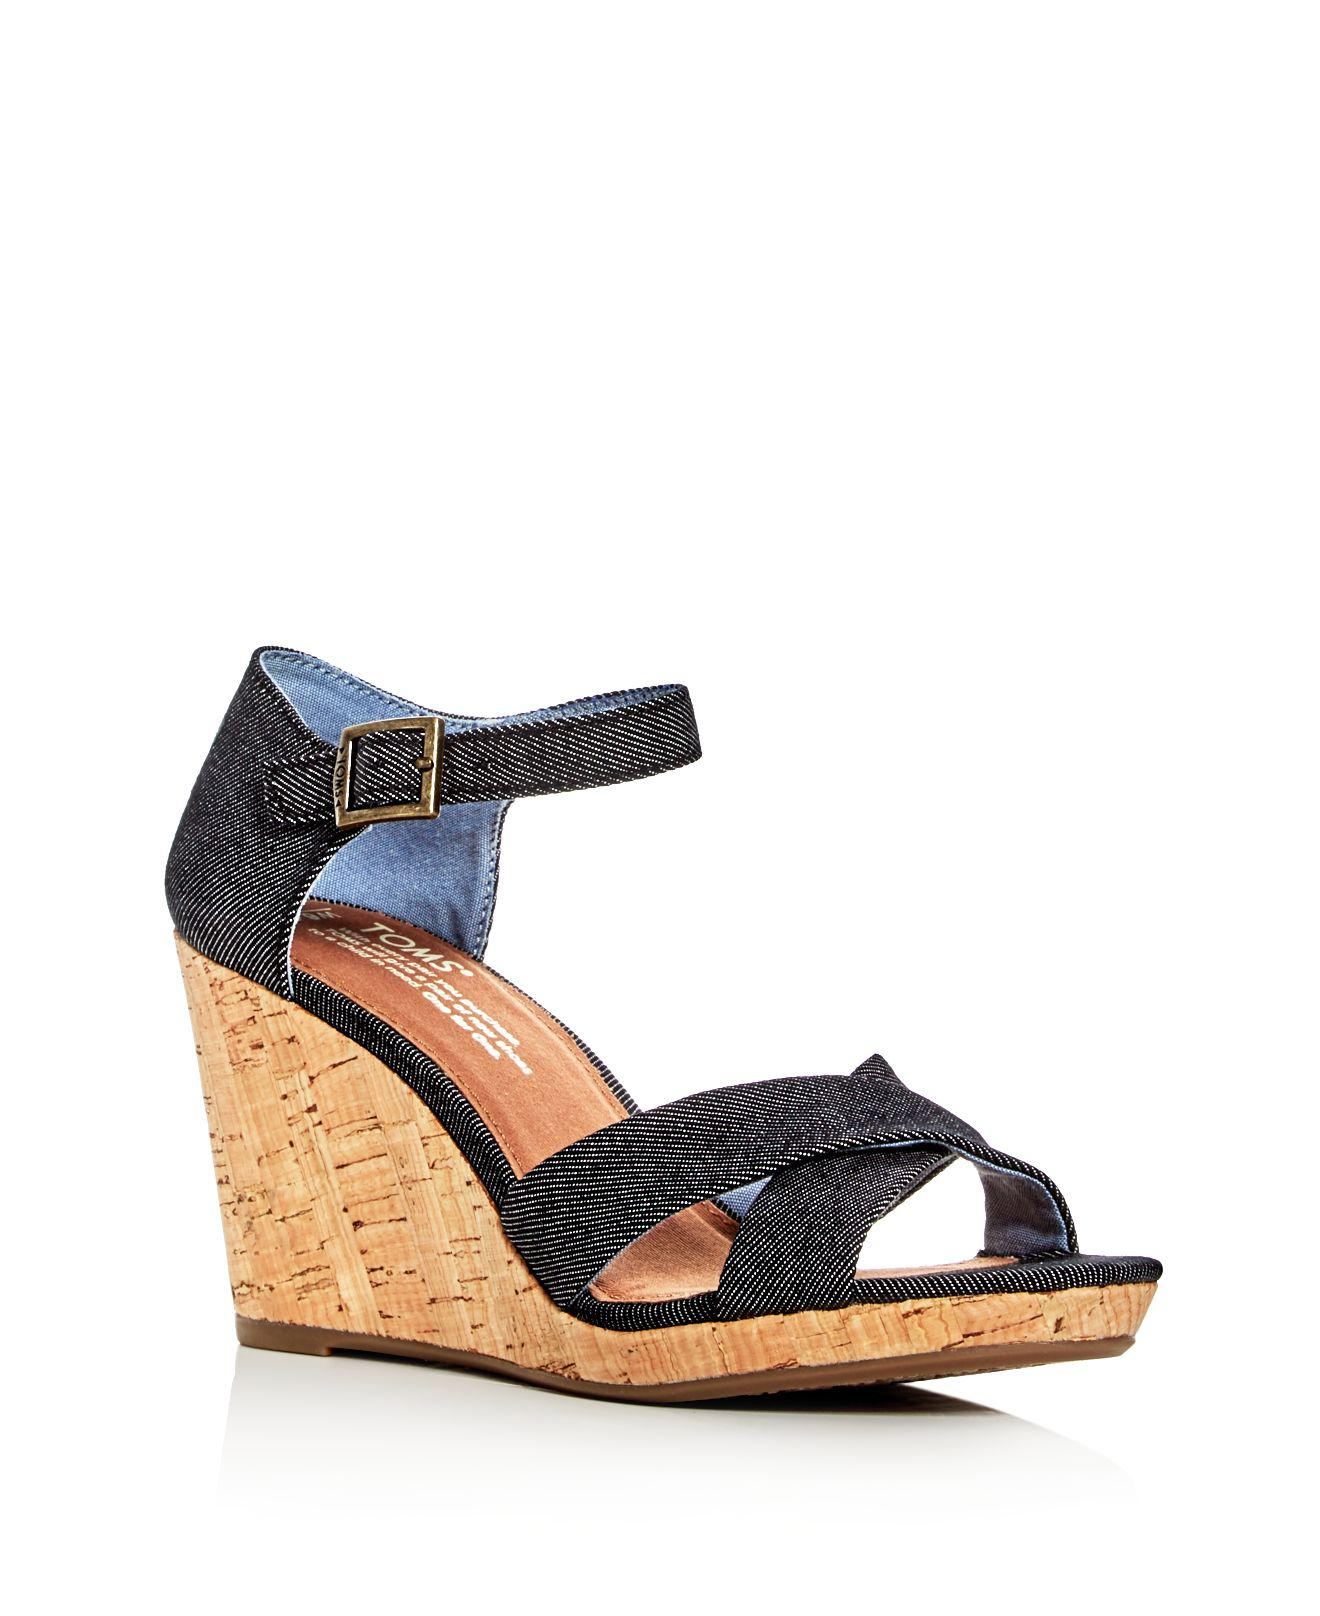 af86e864c96 Lyst - TOMS Women s Sienna Denim Ankle Strap Wedge Sandals in Black